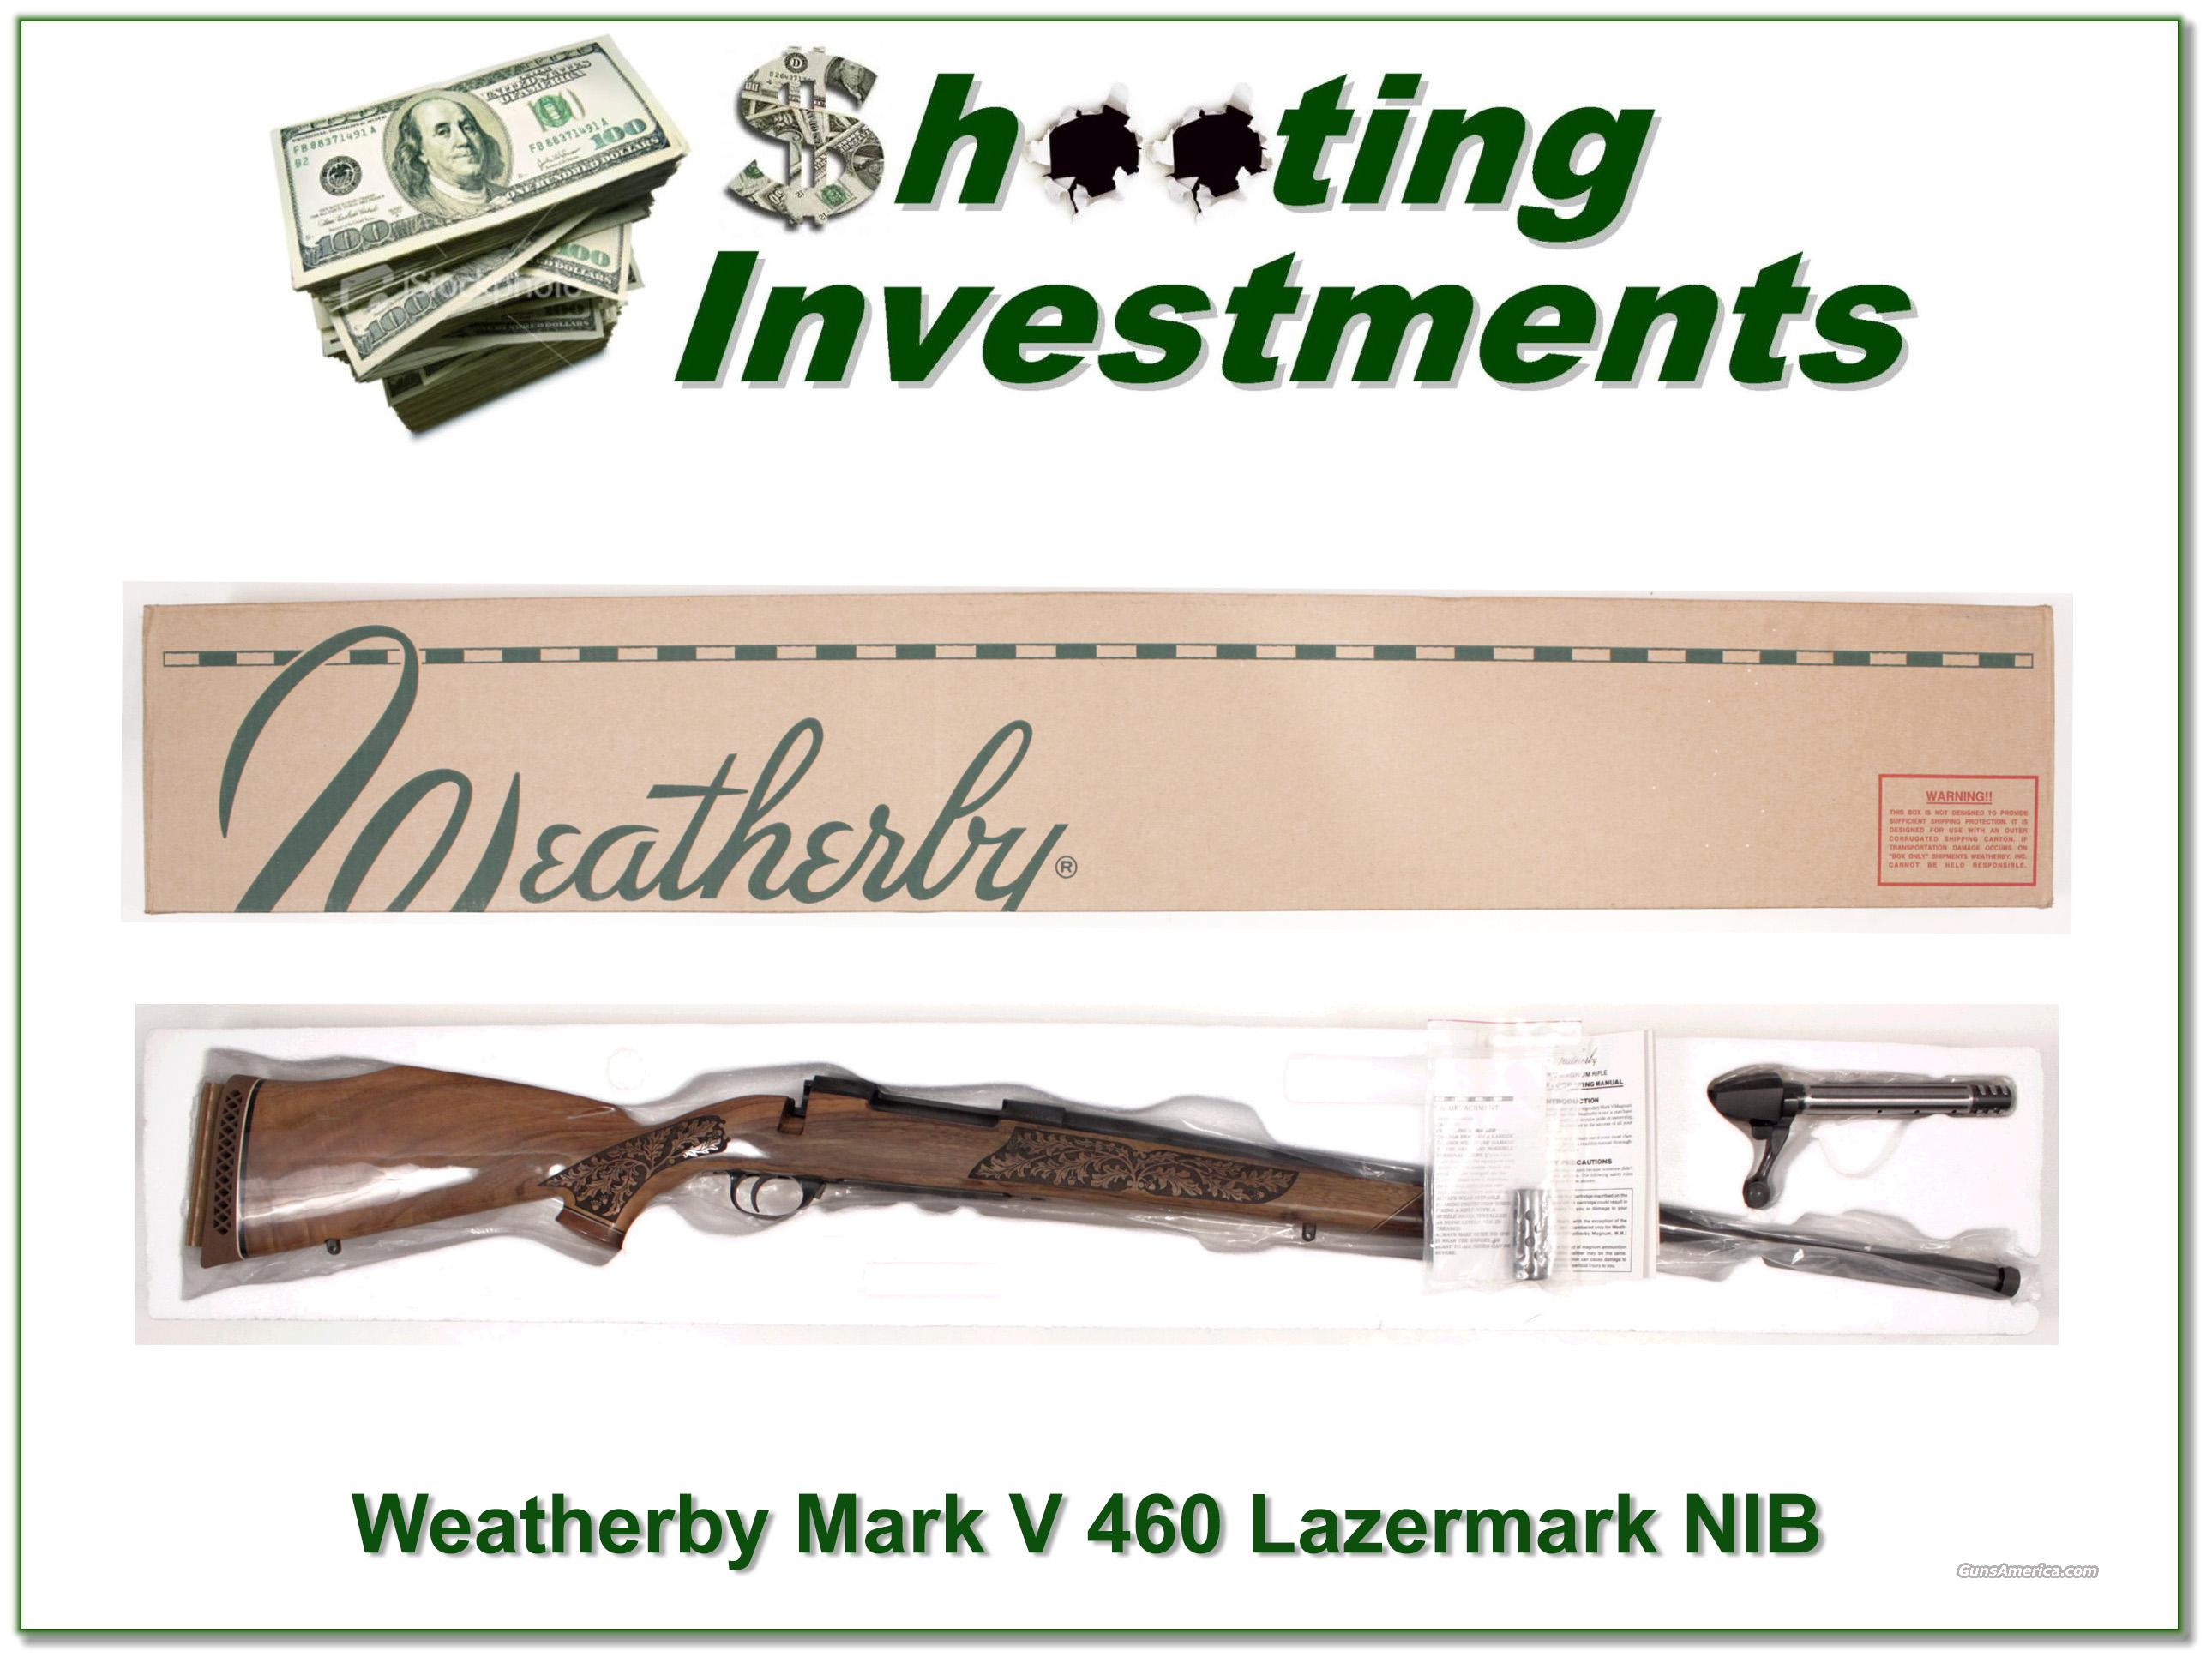 Weatherby Mark V Lazermark 460 NIB and PERFECT!  Guns > Rifles > Weatherby Rifles > Sporting